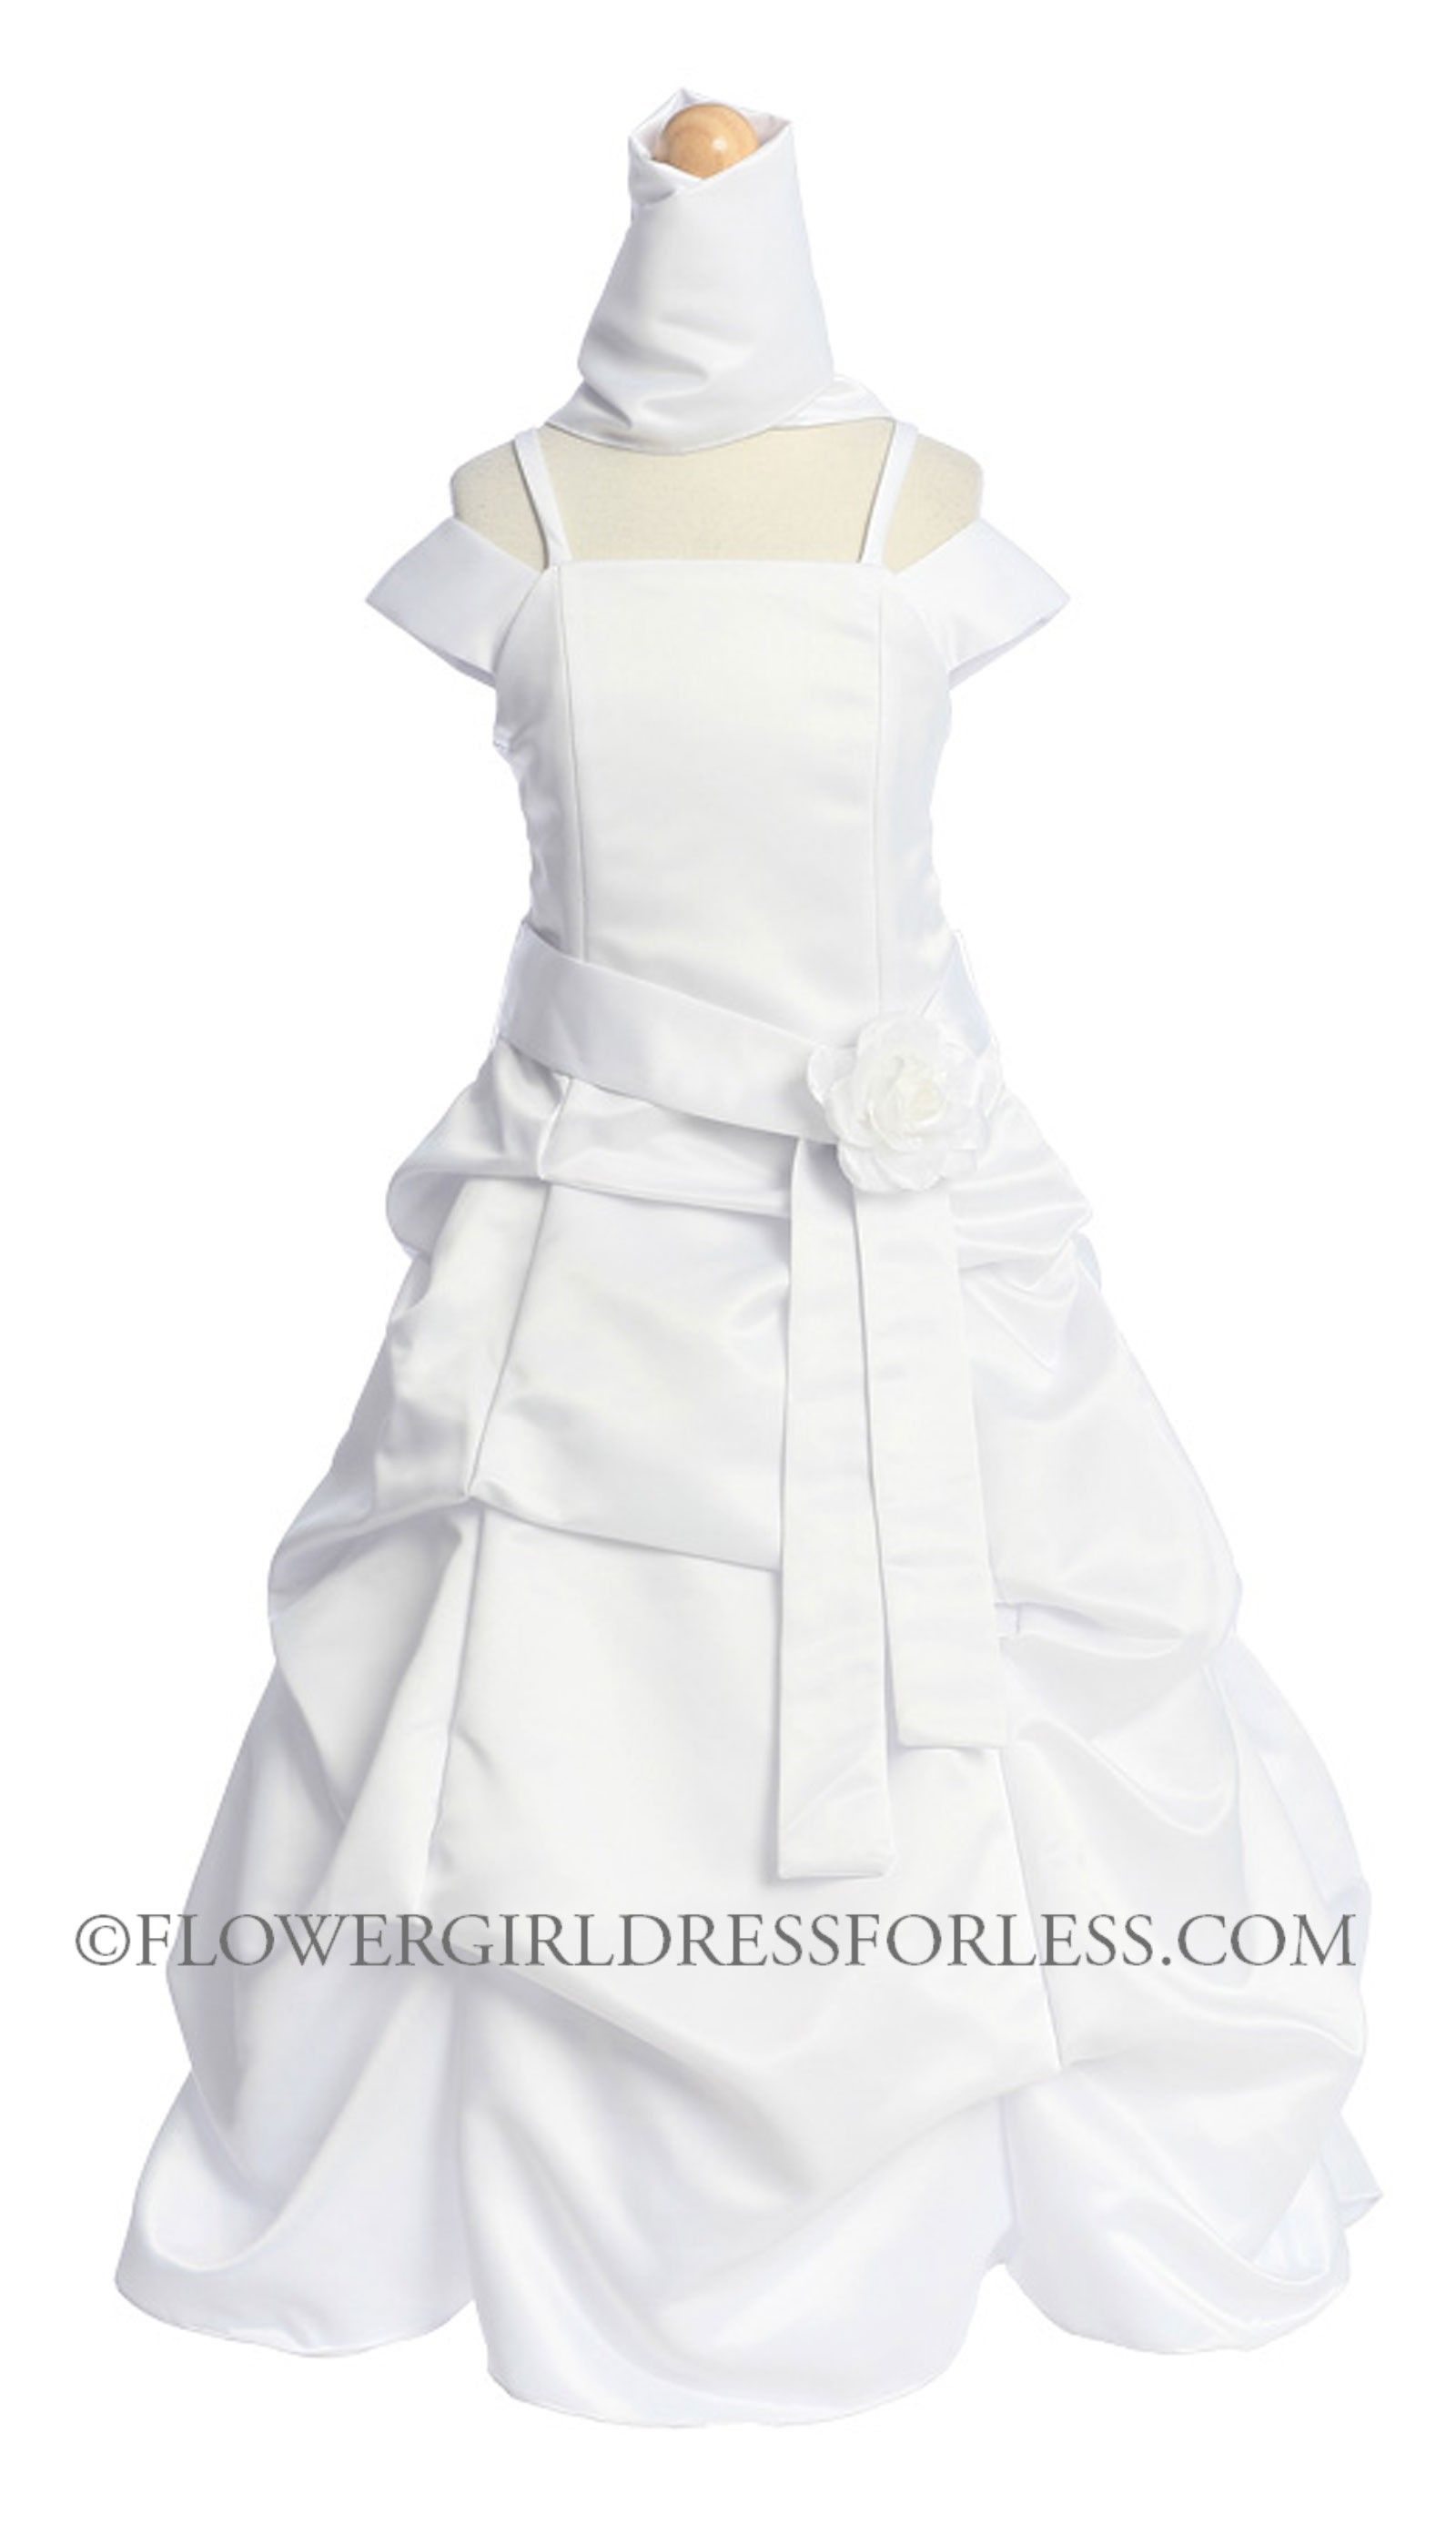 Girls dress style white dress with choice of sashes and